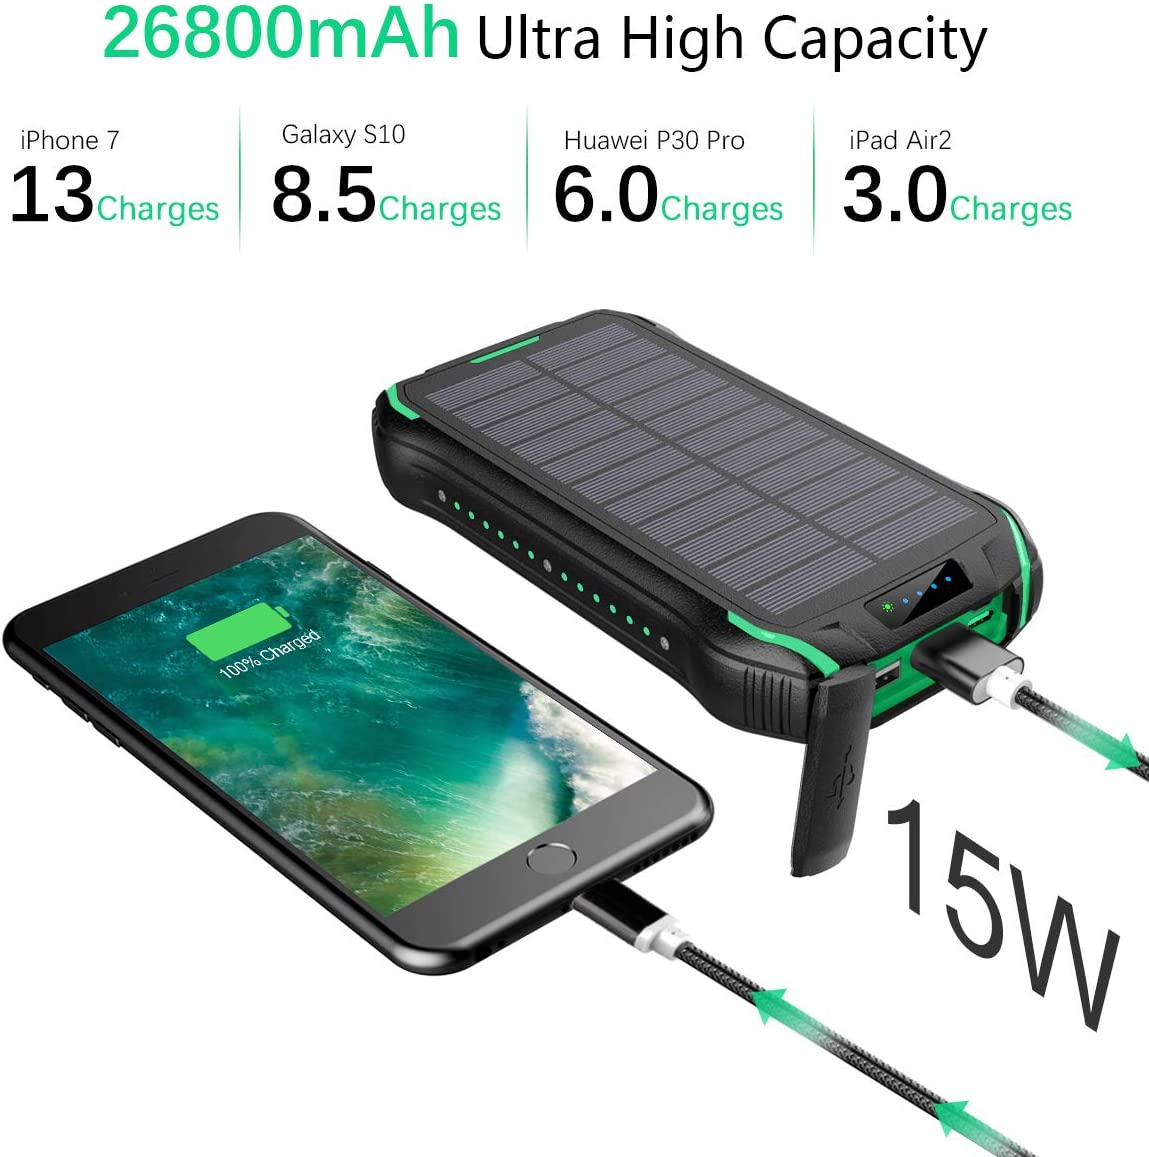 Huge Capacity Backup Battery Compatible Smartphone Tablet and More Portable Charger Battery Pack with 3 Outputs /& 2 Inputs Solar Charger 26800mAh Green Solar Power Bank Micro USB & Type-C